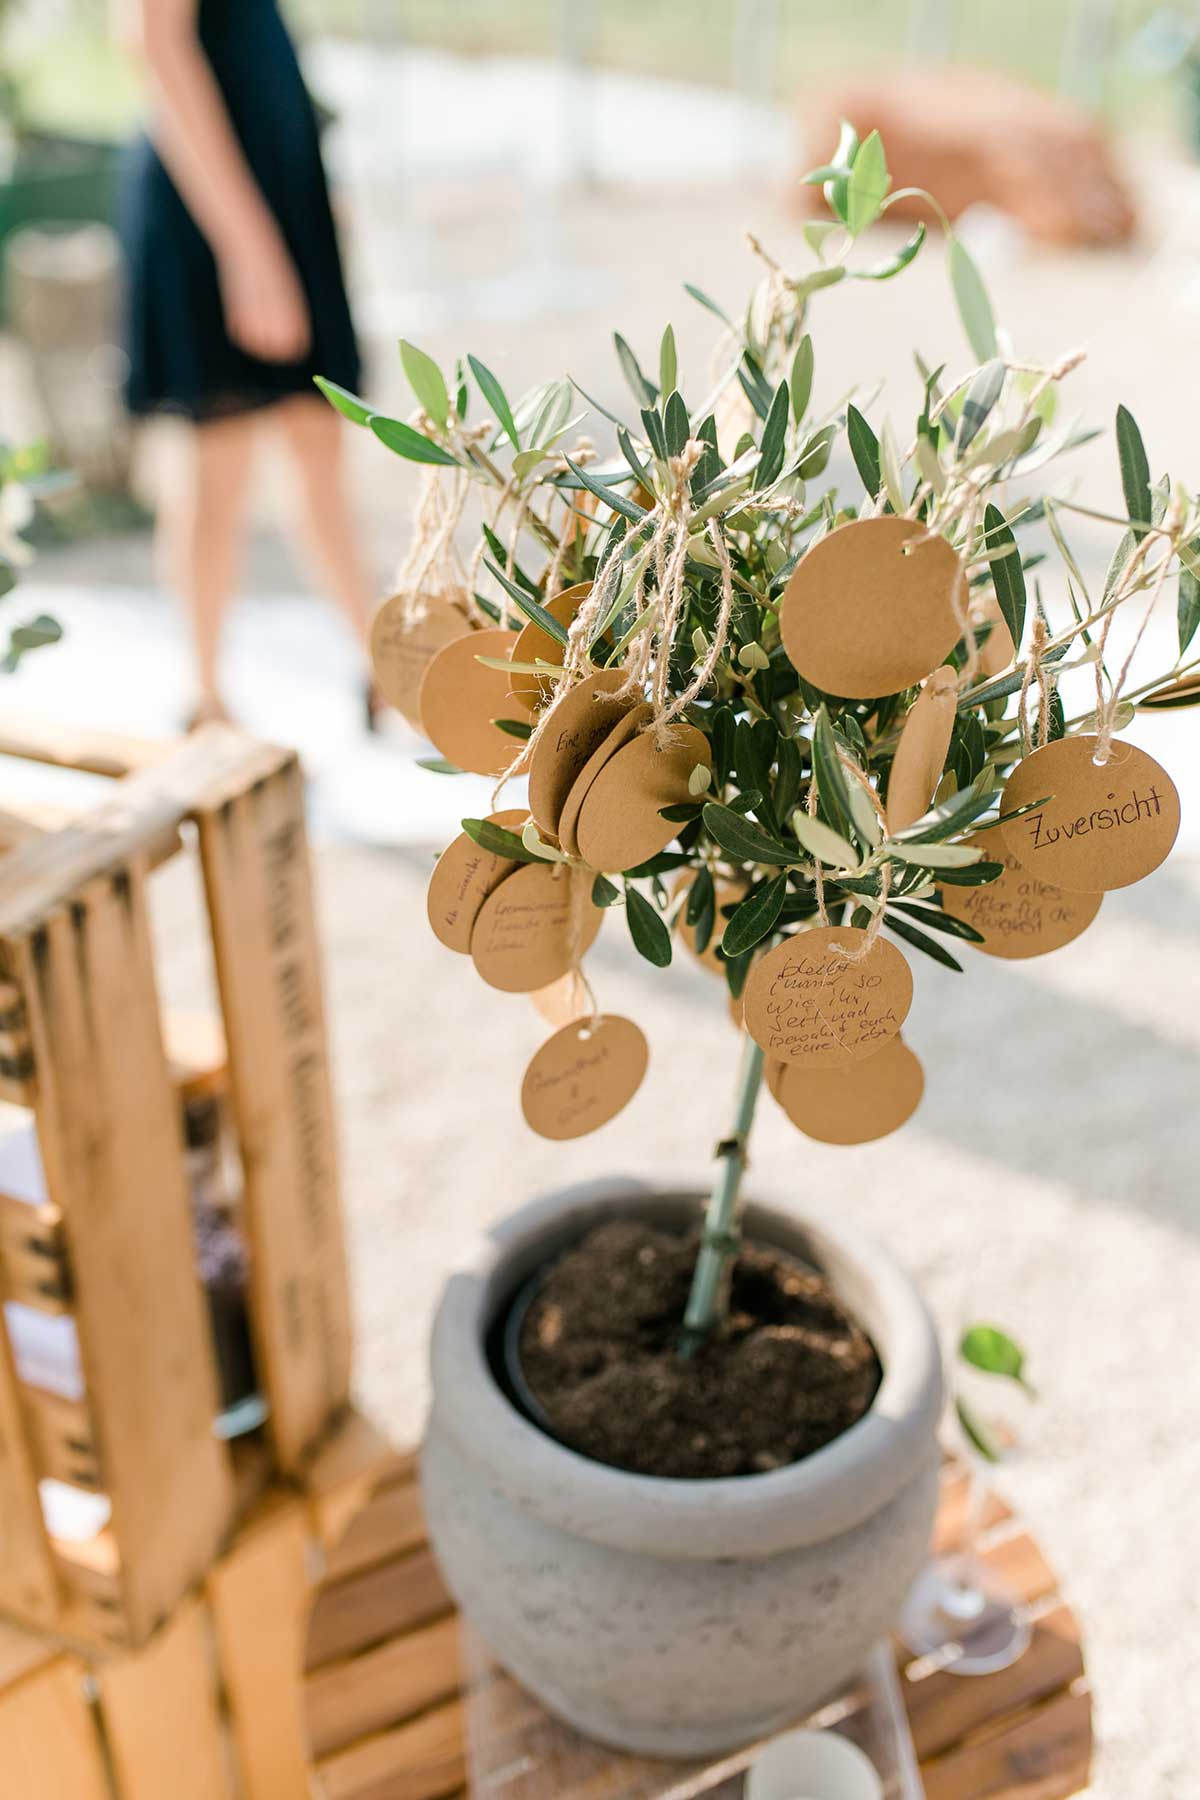 1632404492 64 5 ideas for rituals at the wedding ceremony at a - Planting a tree during the wedding: ritual for the wedding ceremony